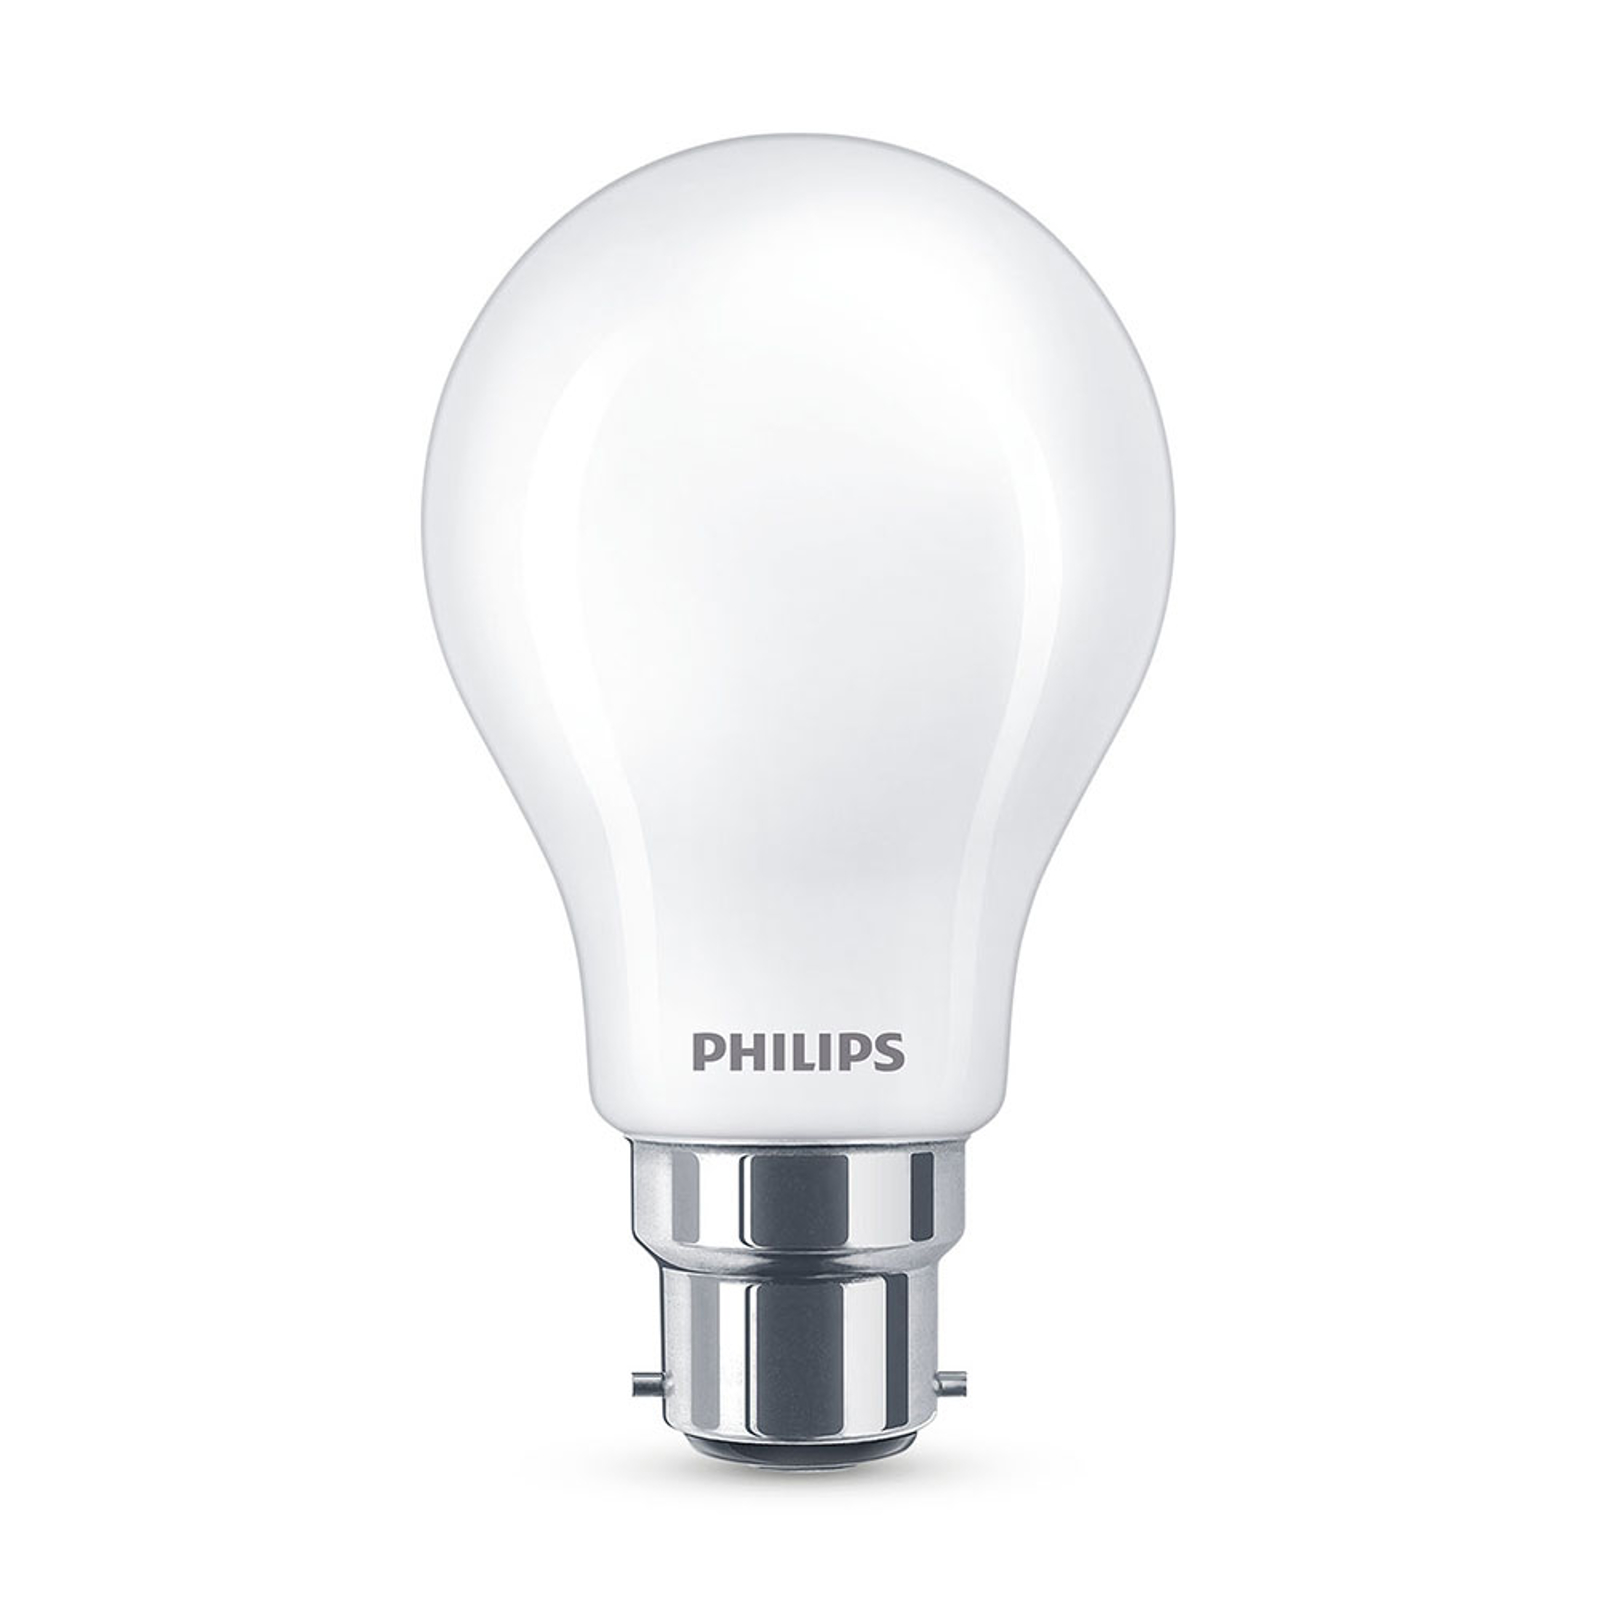 Philips ampoule LED Classic B22 A60 7W 2 700K mate